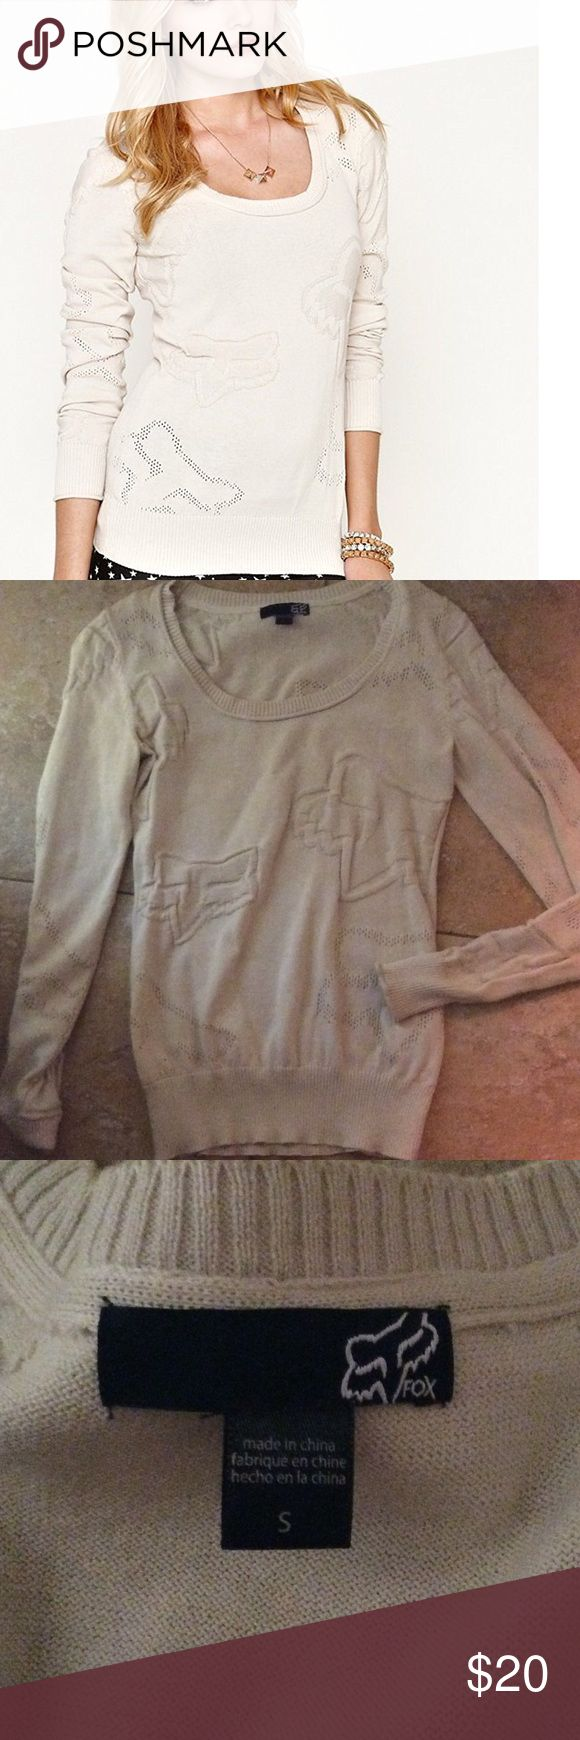 SM Cream Juniors Fox Sweater Never worn Fox Riders sweater. Soft cream sweater with Fox logo imprinted in fabric texture. Lightweight, and form fitting. True to size. Scoop necks don't work well for me, but it's a beautiful classy sweater in immaculate condition. You won't be able to tell it didn't come from a store. Fox Sweaters Crew & Scoop Necks